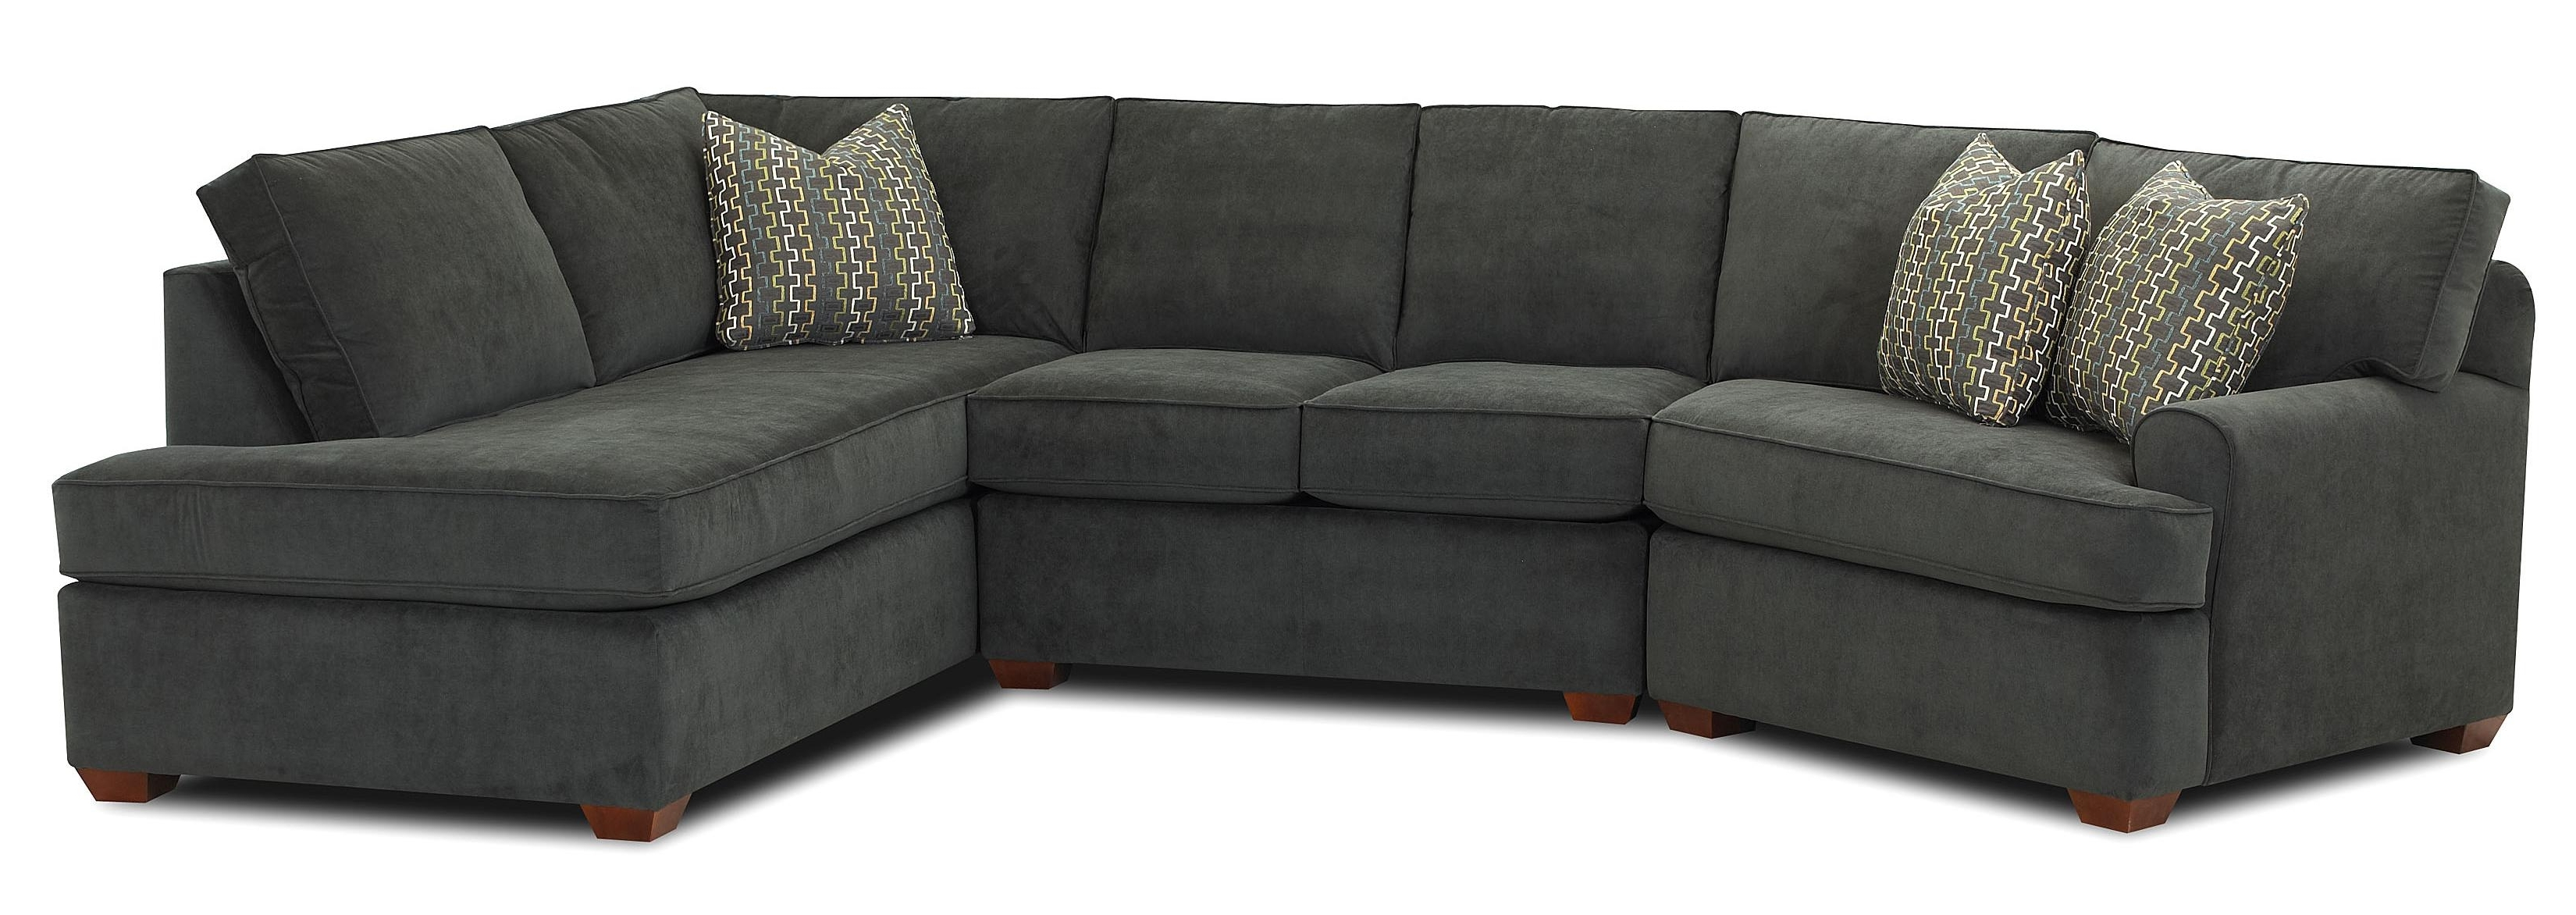 Widely Used Gardiners Sectional Sofas Throughout Sectional Sofa With Right Facing Sofa Chaiseklaussner (View 20 of 20)